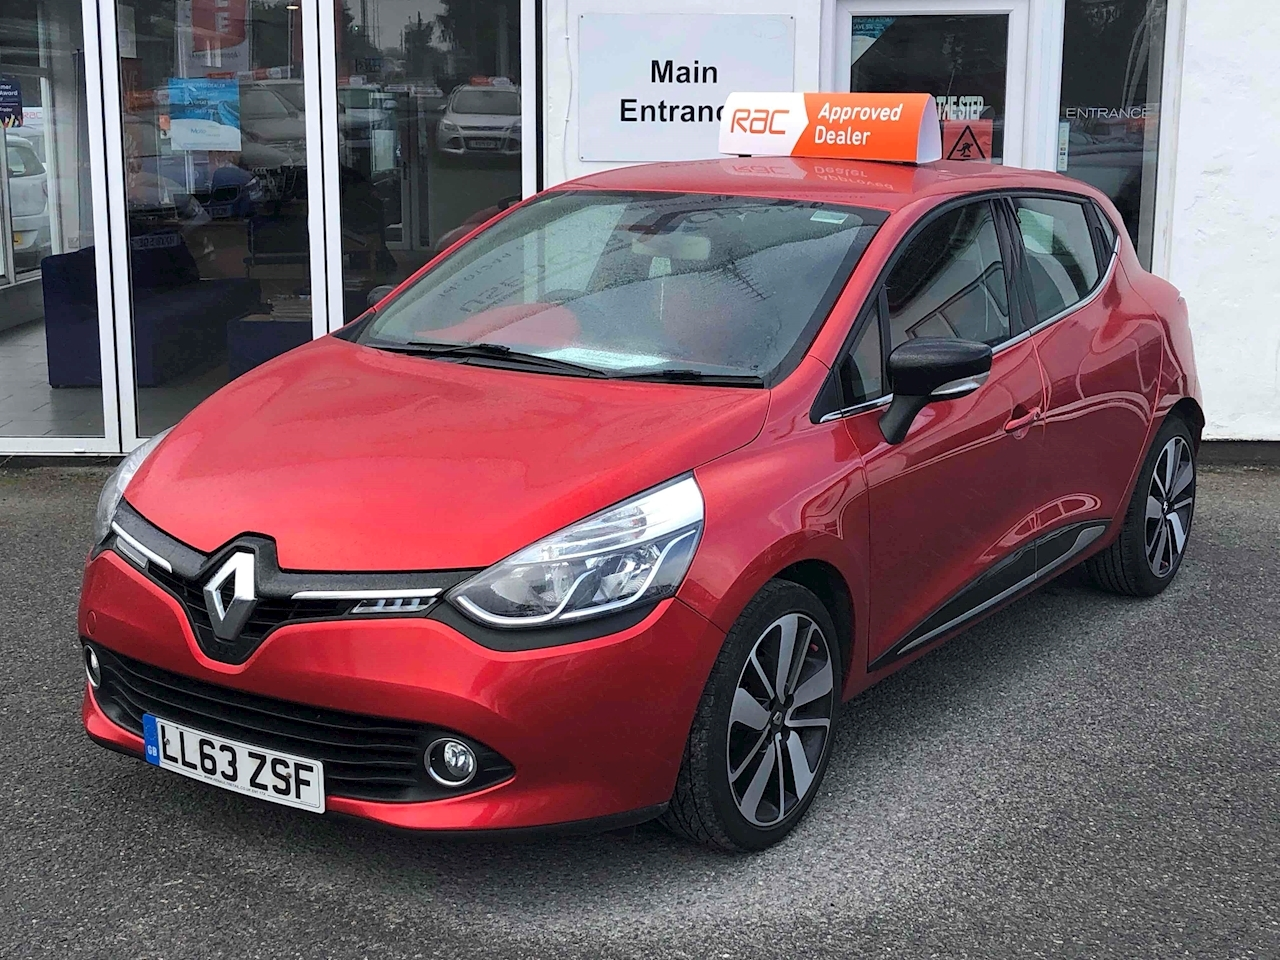 Clio Dynamique S Medianav Dci Hatchback 1.5 Manual Diesel